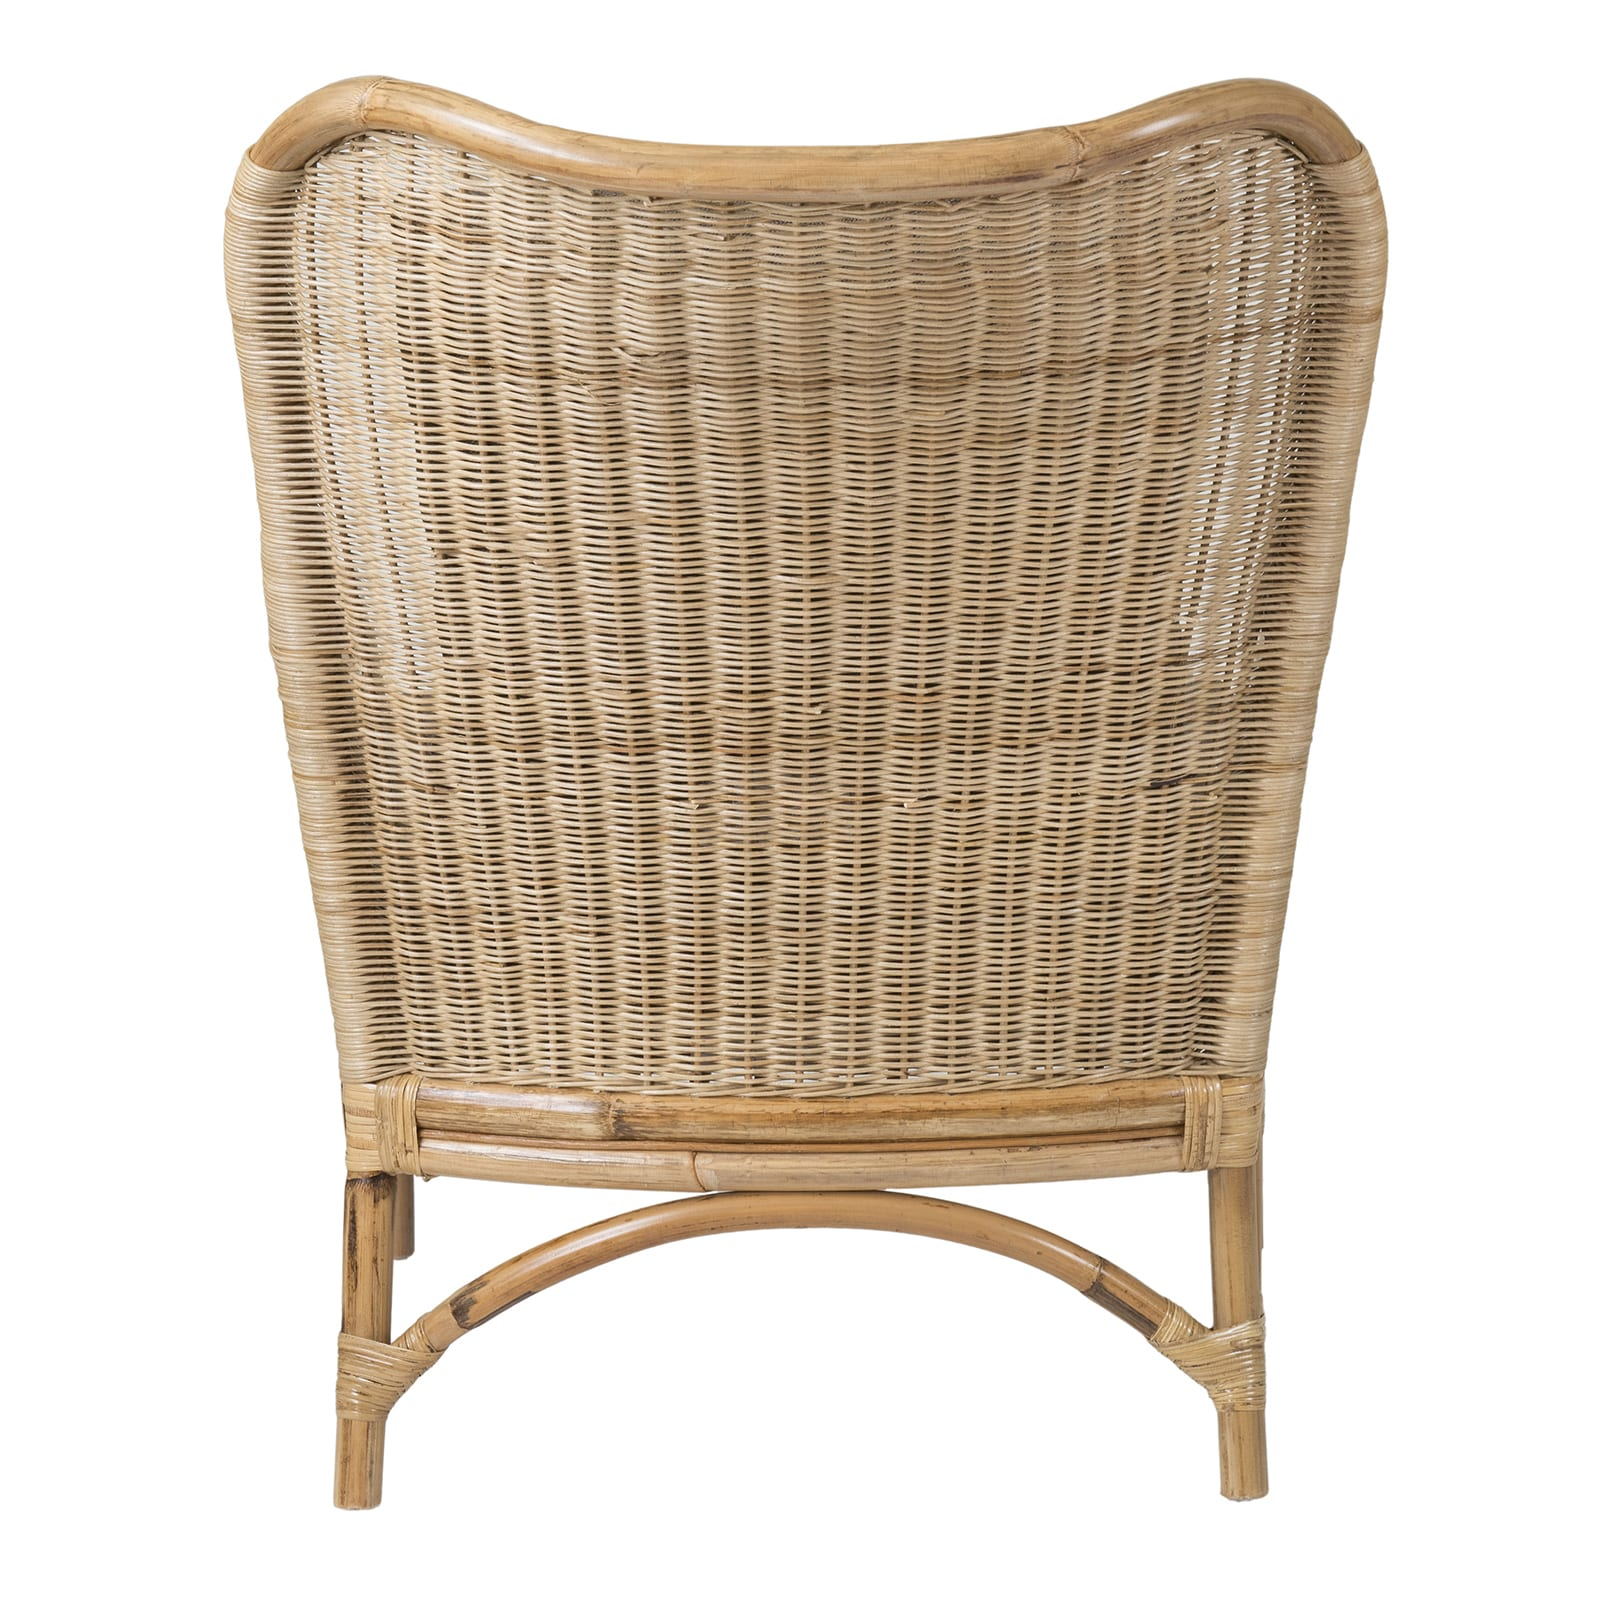 Shop East At Mainu0027s Lyndon Brown Square Rattan Accent Chair   Free Shipping  Today   Overstock.com   13996253